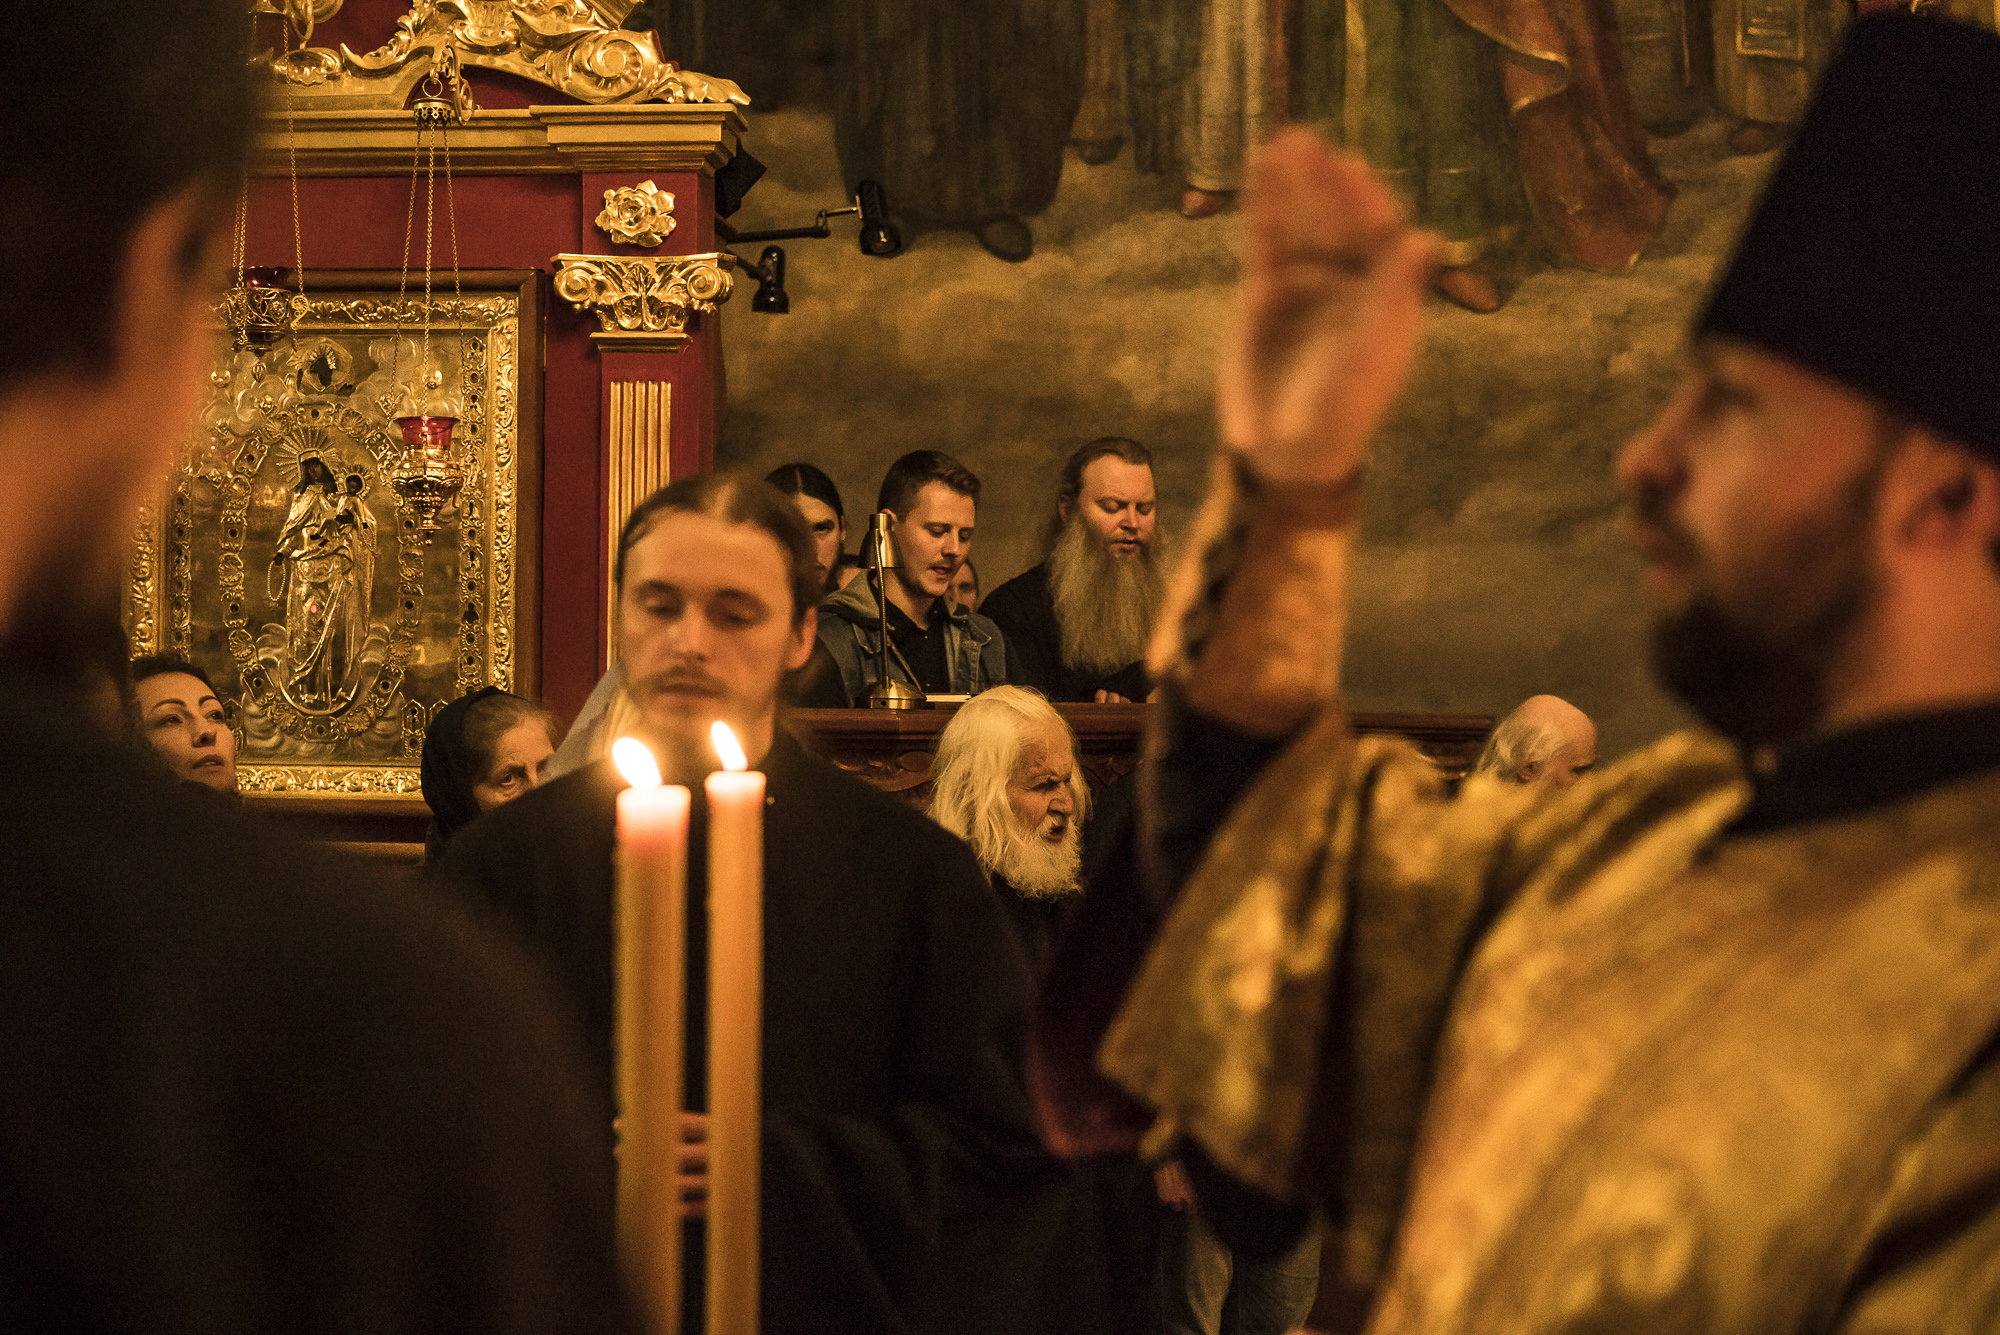 First Deacon Father Agapit, right, leads the Brethren service at the Church of the Exaltation of the Cross at the Kyiv-Pechersk Lavra on Saturday, October 6, 2018 in Kyiv, Ukraine.